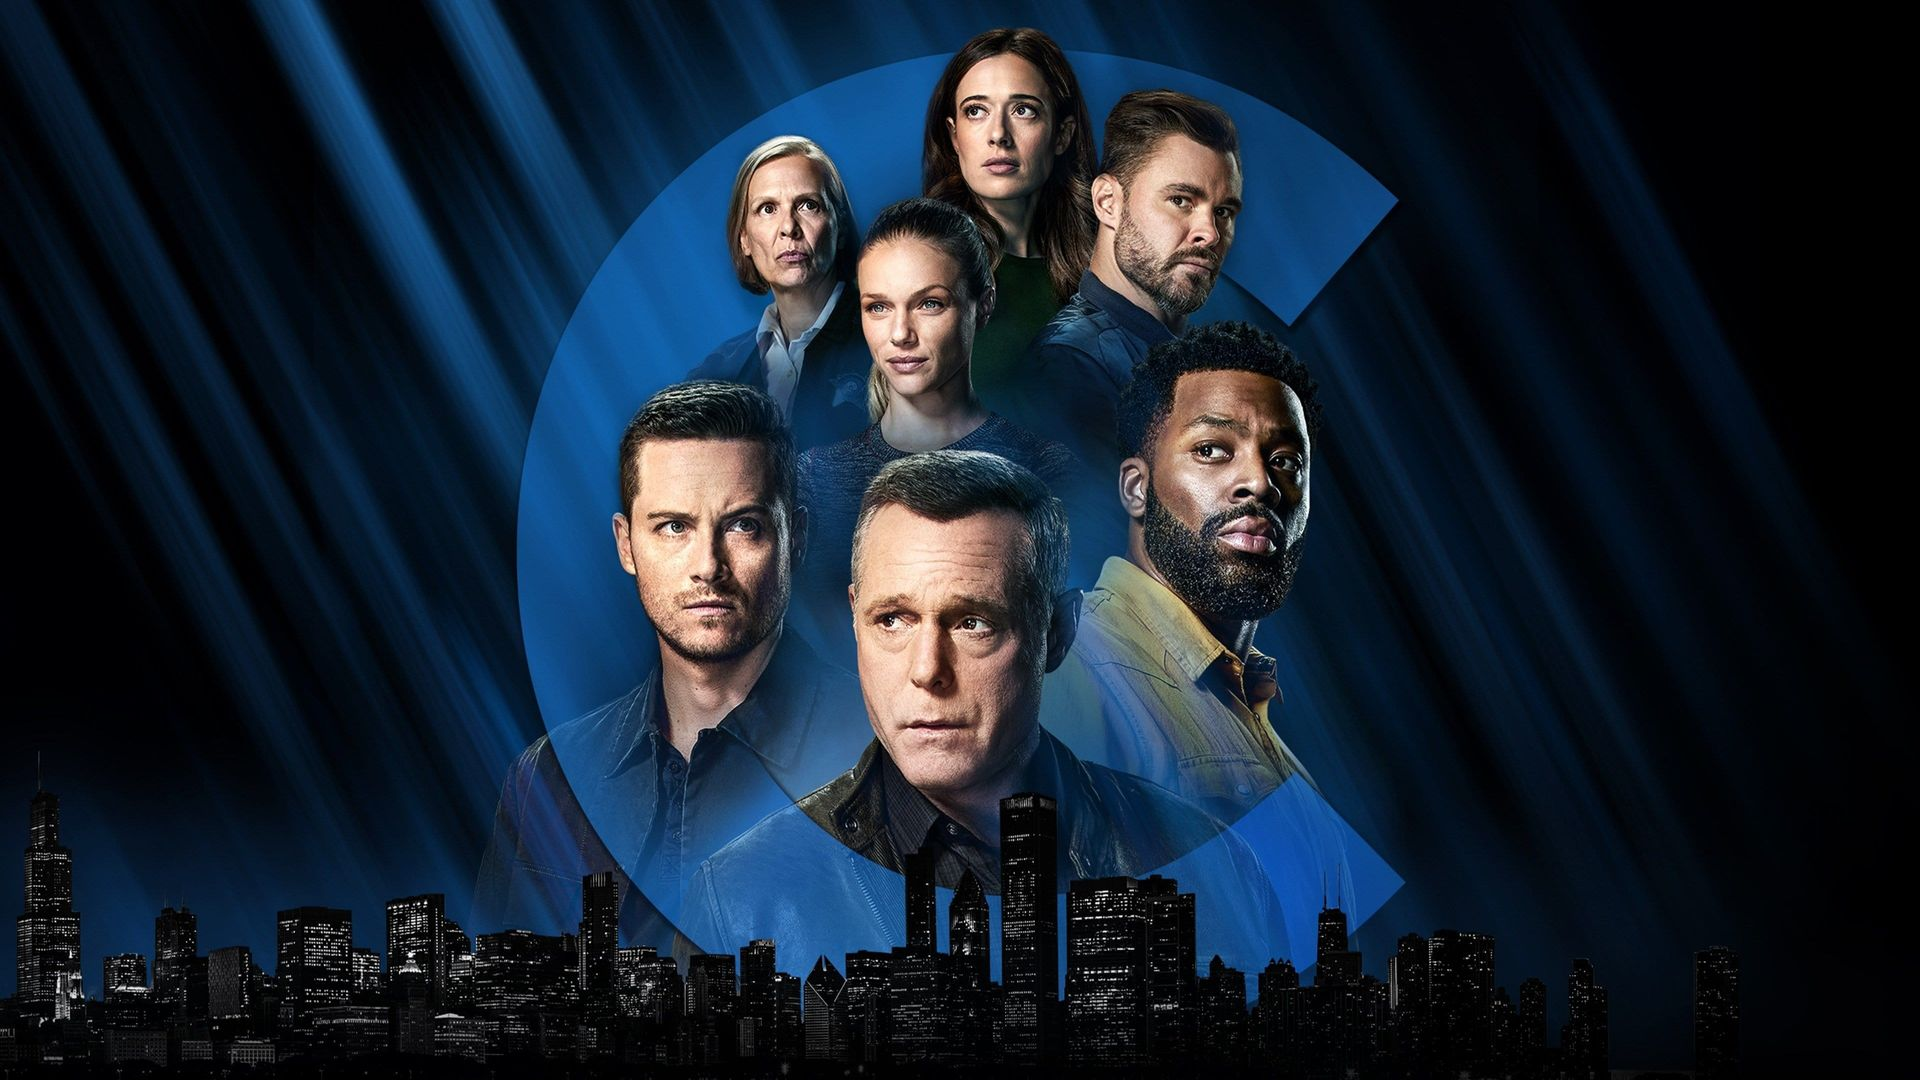 Alvin Purple Tv Series Download chicago p.d. - watch episodes on prime video, hulu, oxygen